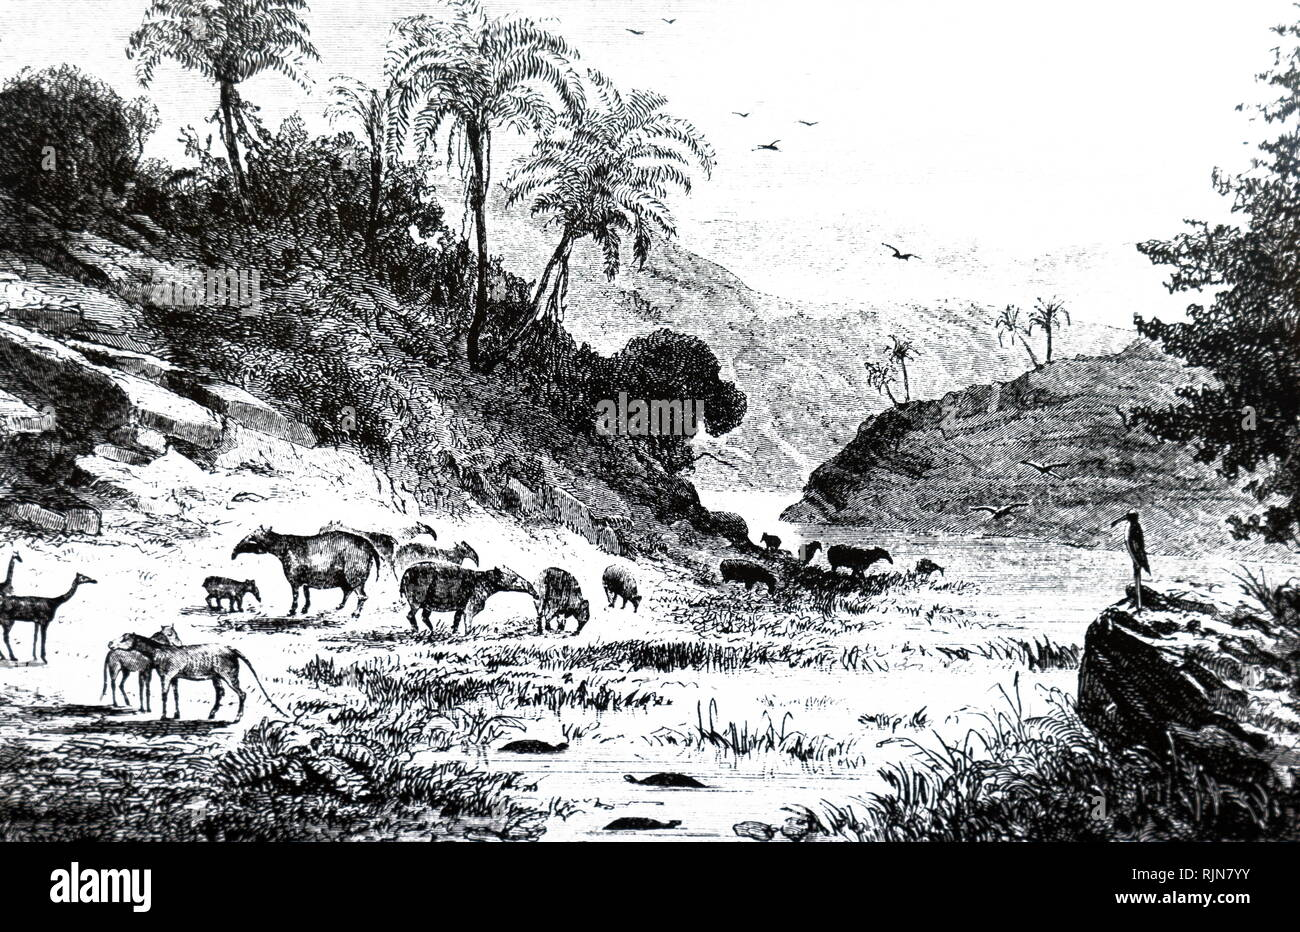 An engraving depicting an imaginary landscape during the Tertiary period, showing groups of Palaeotheria and Anoplotherium. Dated 19th century - Stock Image